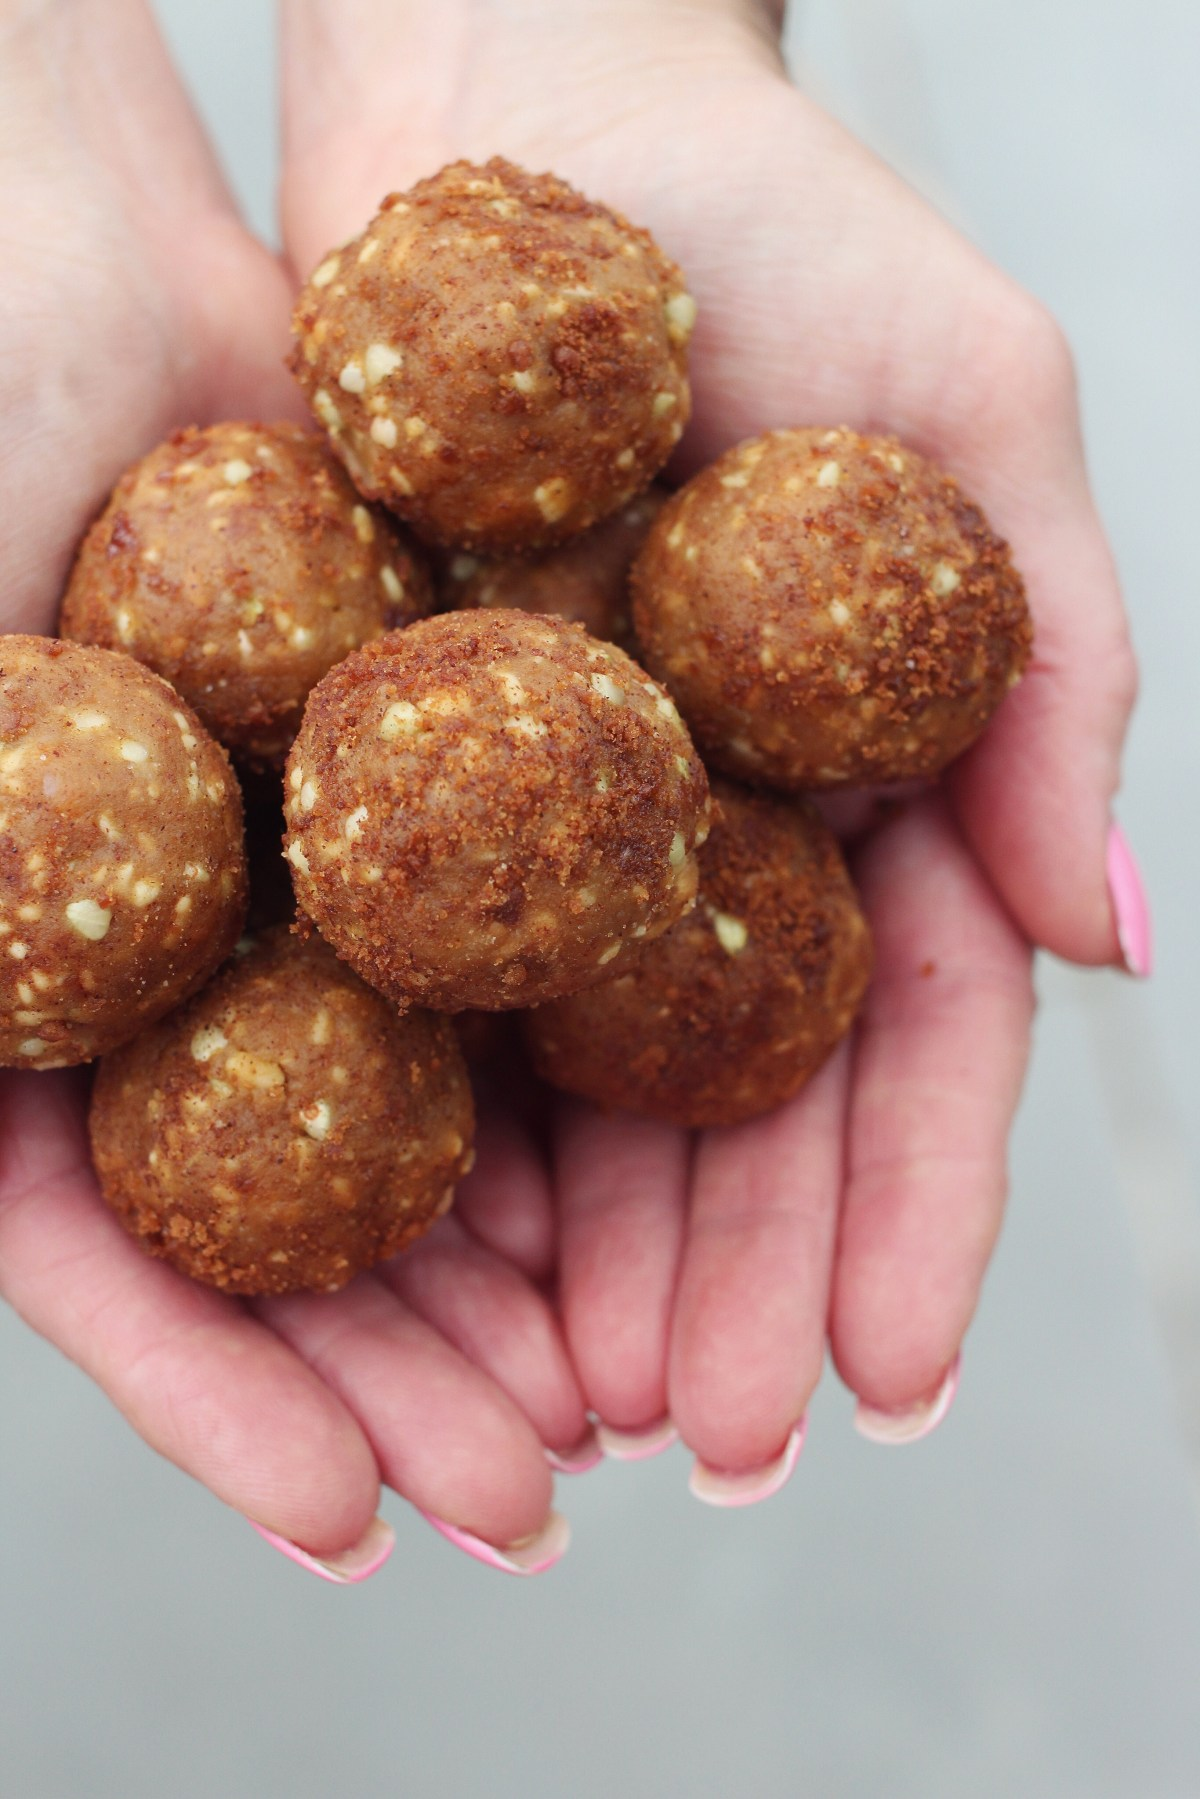 close-up overhead photo of peanut butter cookie dough balls being held in two hands together